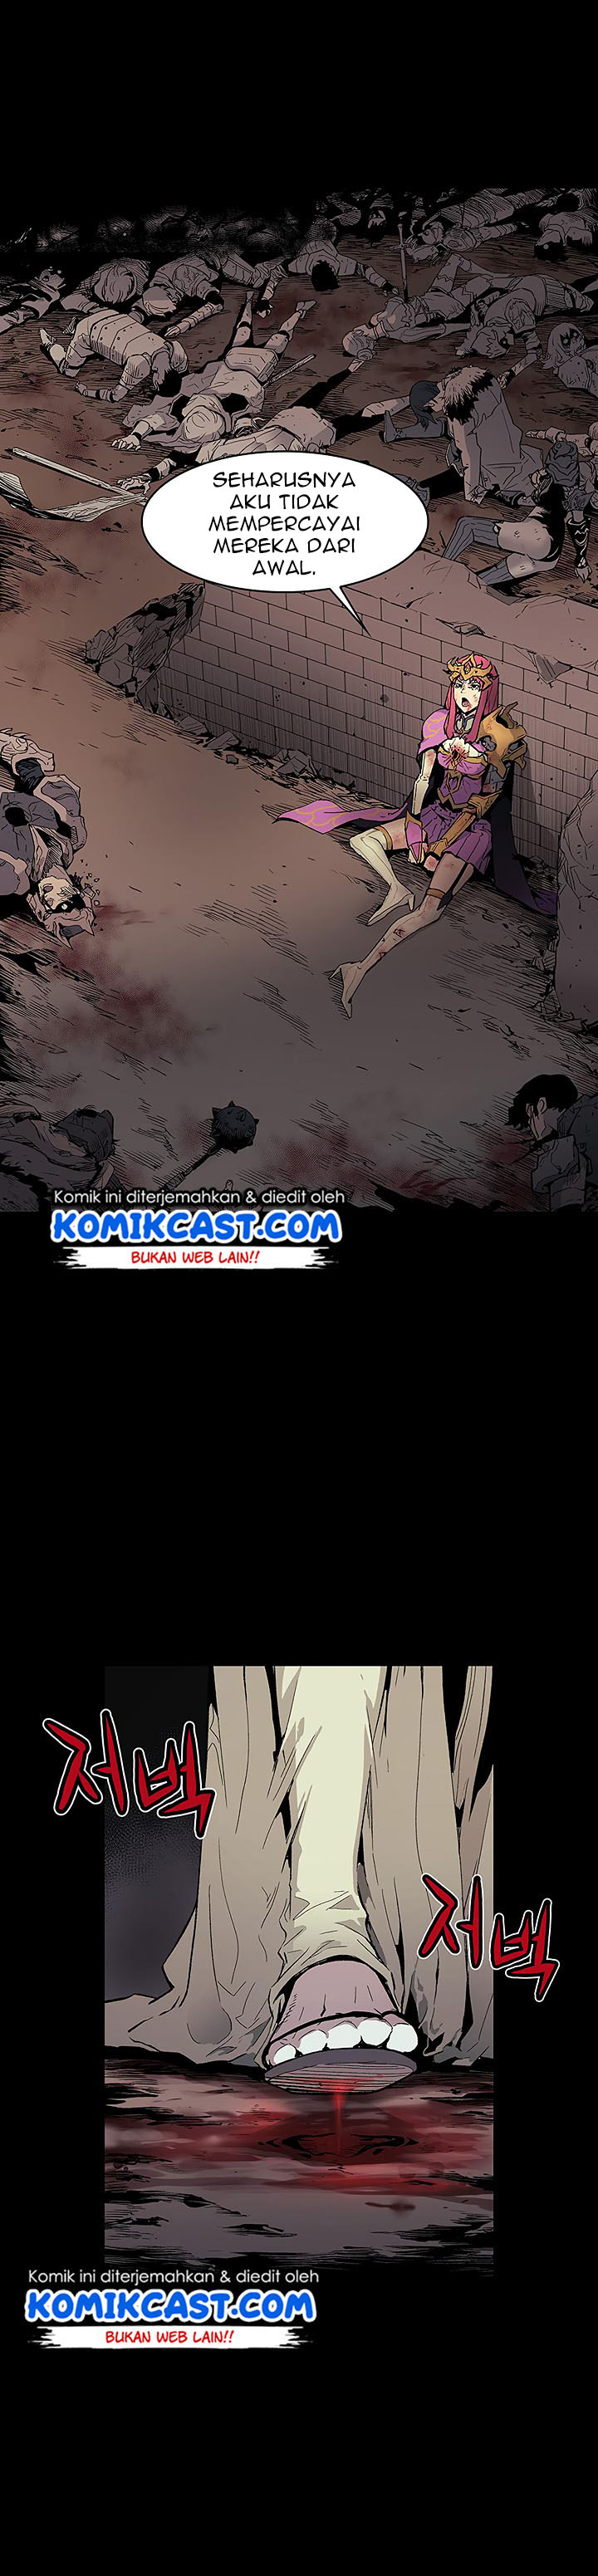 Spoiler Manhwa The Second Coming of Gluttony 3